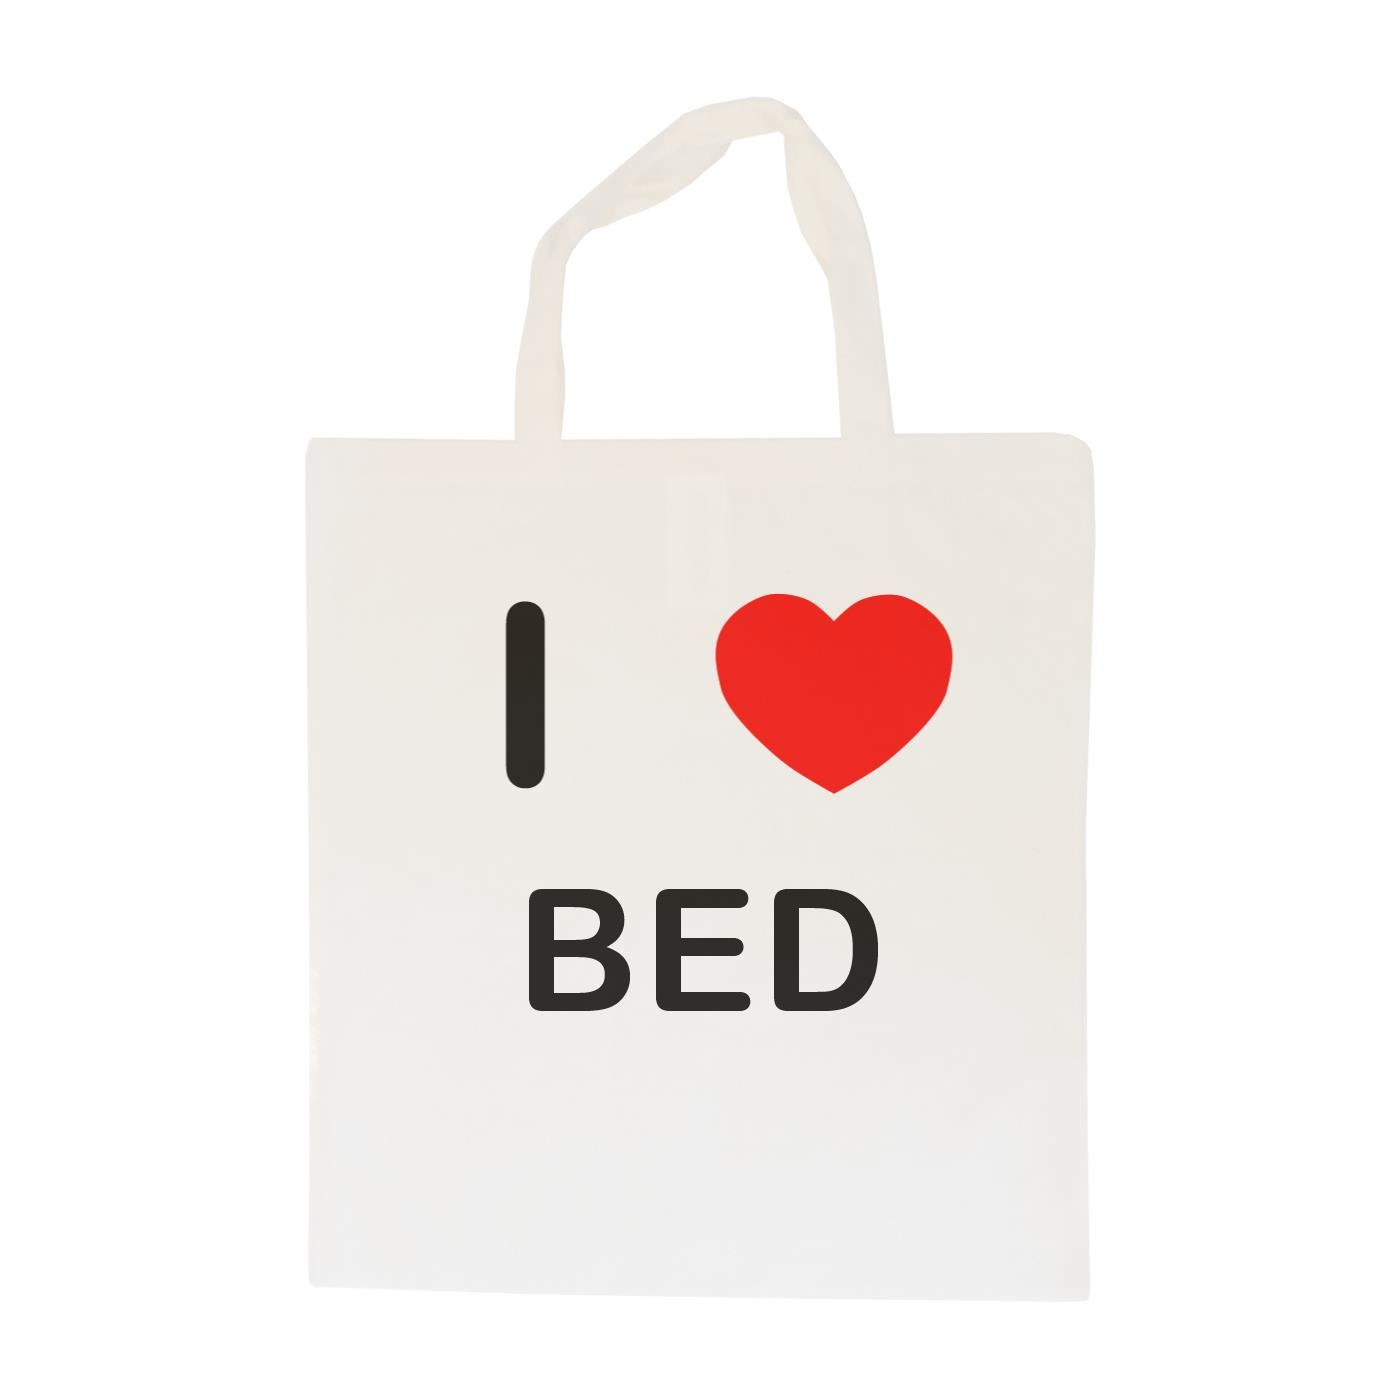 I Love Bed - Cotton Bag | Size choice Tote, Shopper or Sling